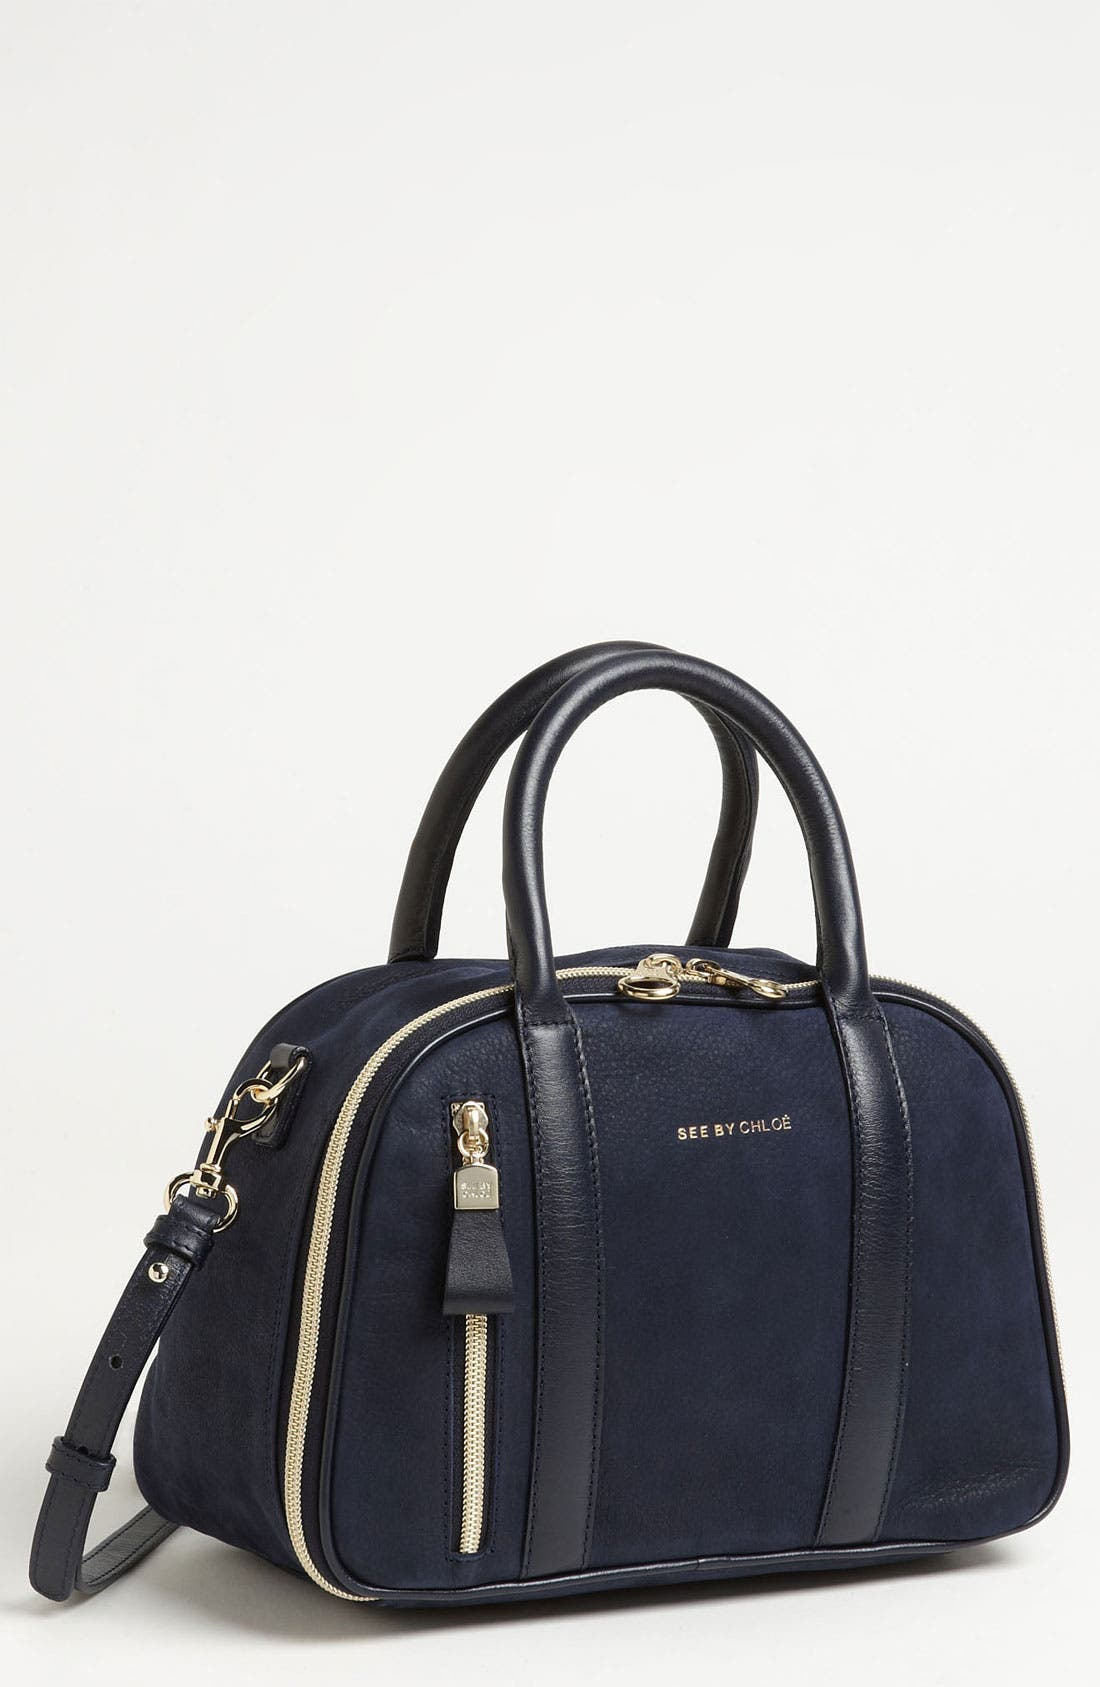 Main Image - See by Chloé 'Harriet - Small' Double Function Satchel